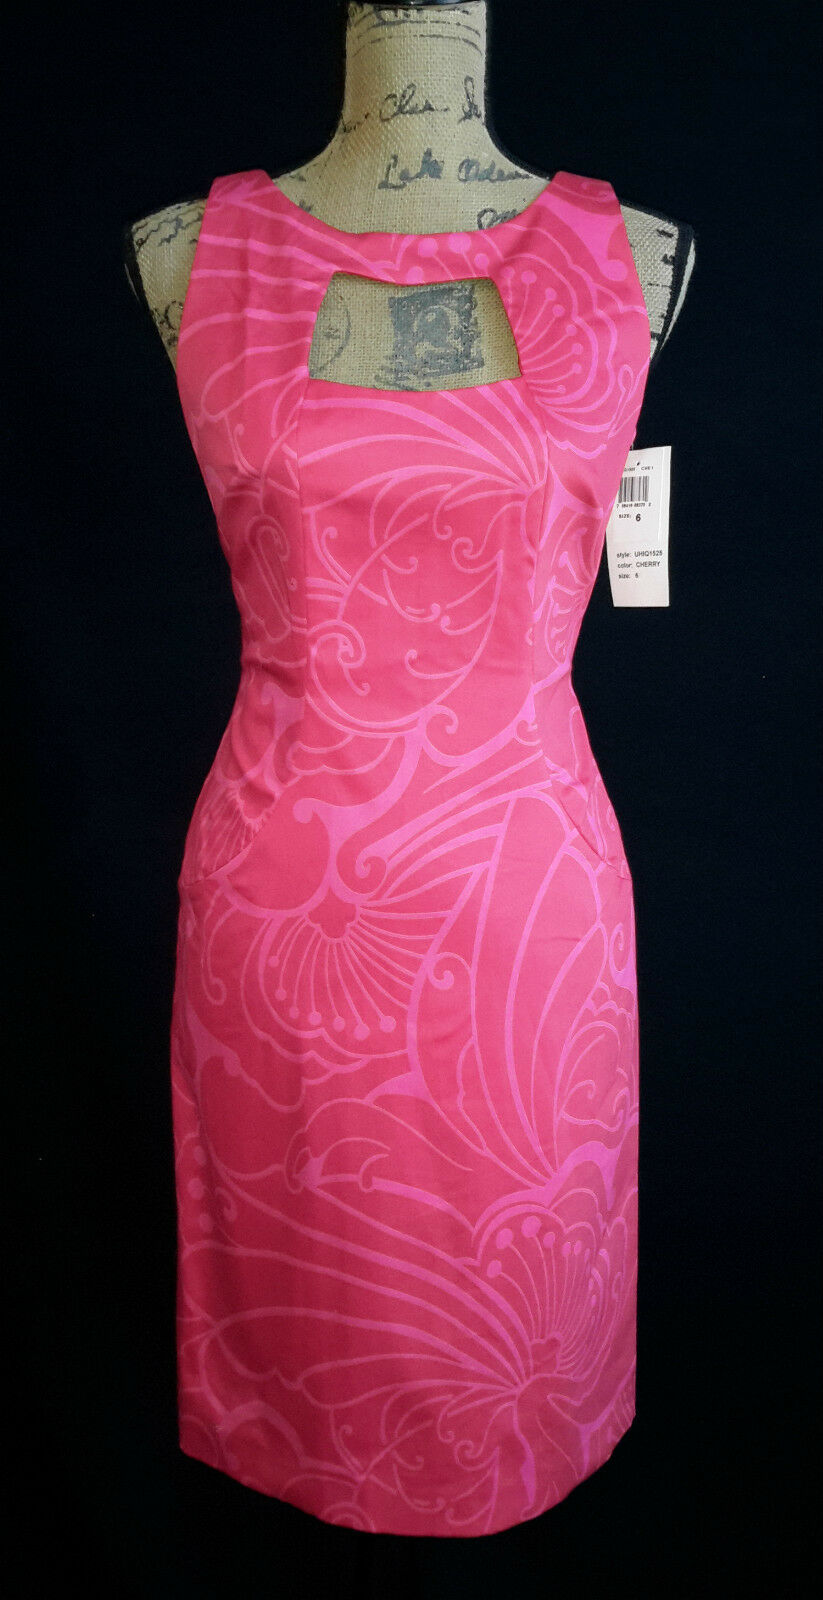 NEW David Meister Dress 6 Med cherry rot Rosa floral dot open back key hole NWT